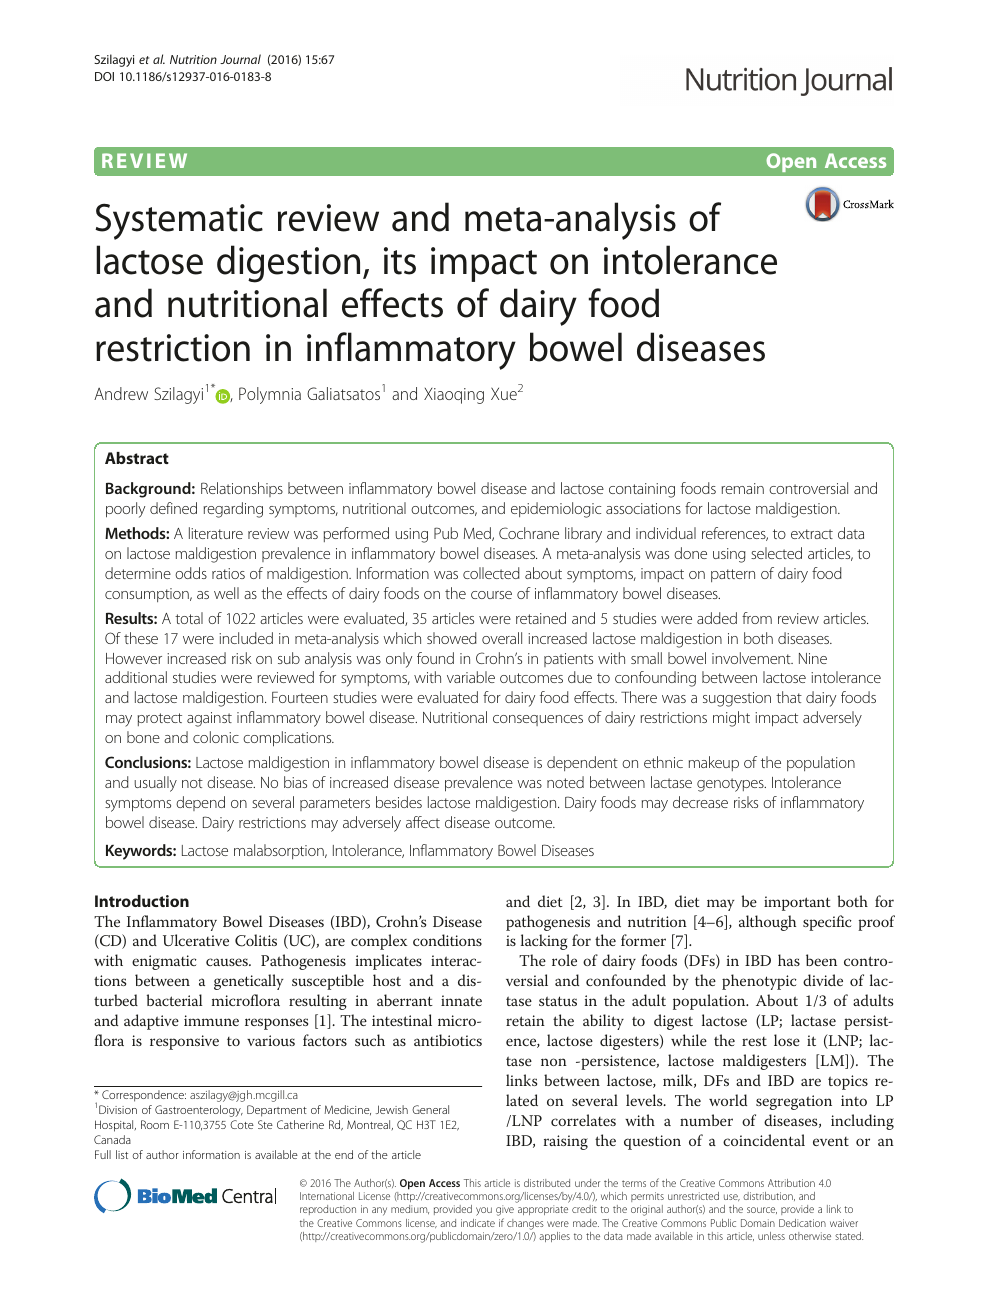 Systematic review and meta-analysis of lactose digestion